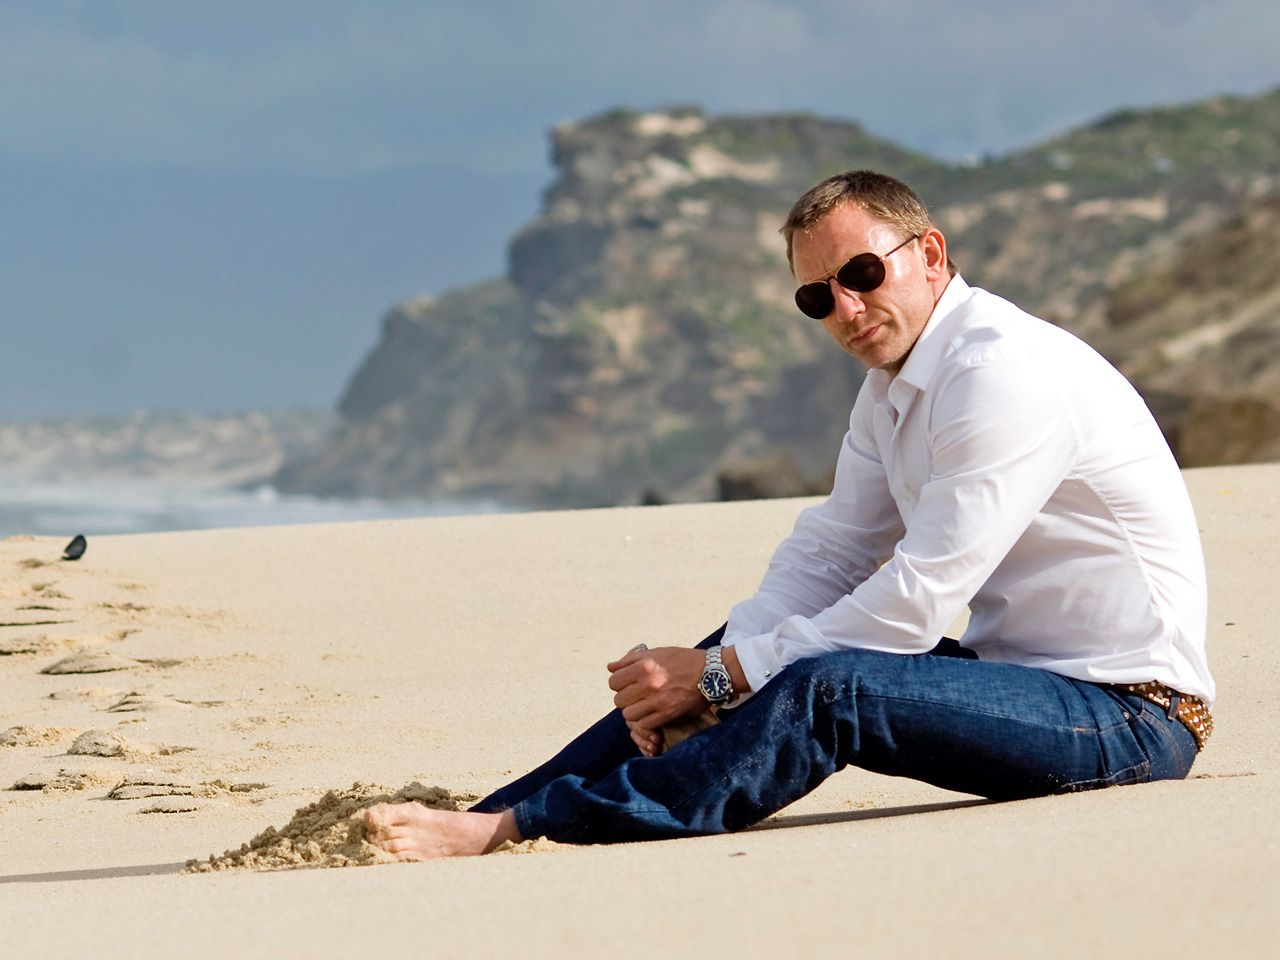 James Bond actor, Daniel Craig at the beach wearing white shirt on jeans. Description from modernmancollection.com. I searched for this on bing.com/images